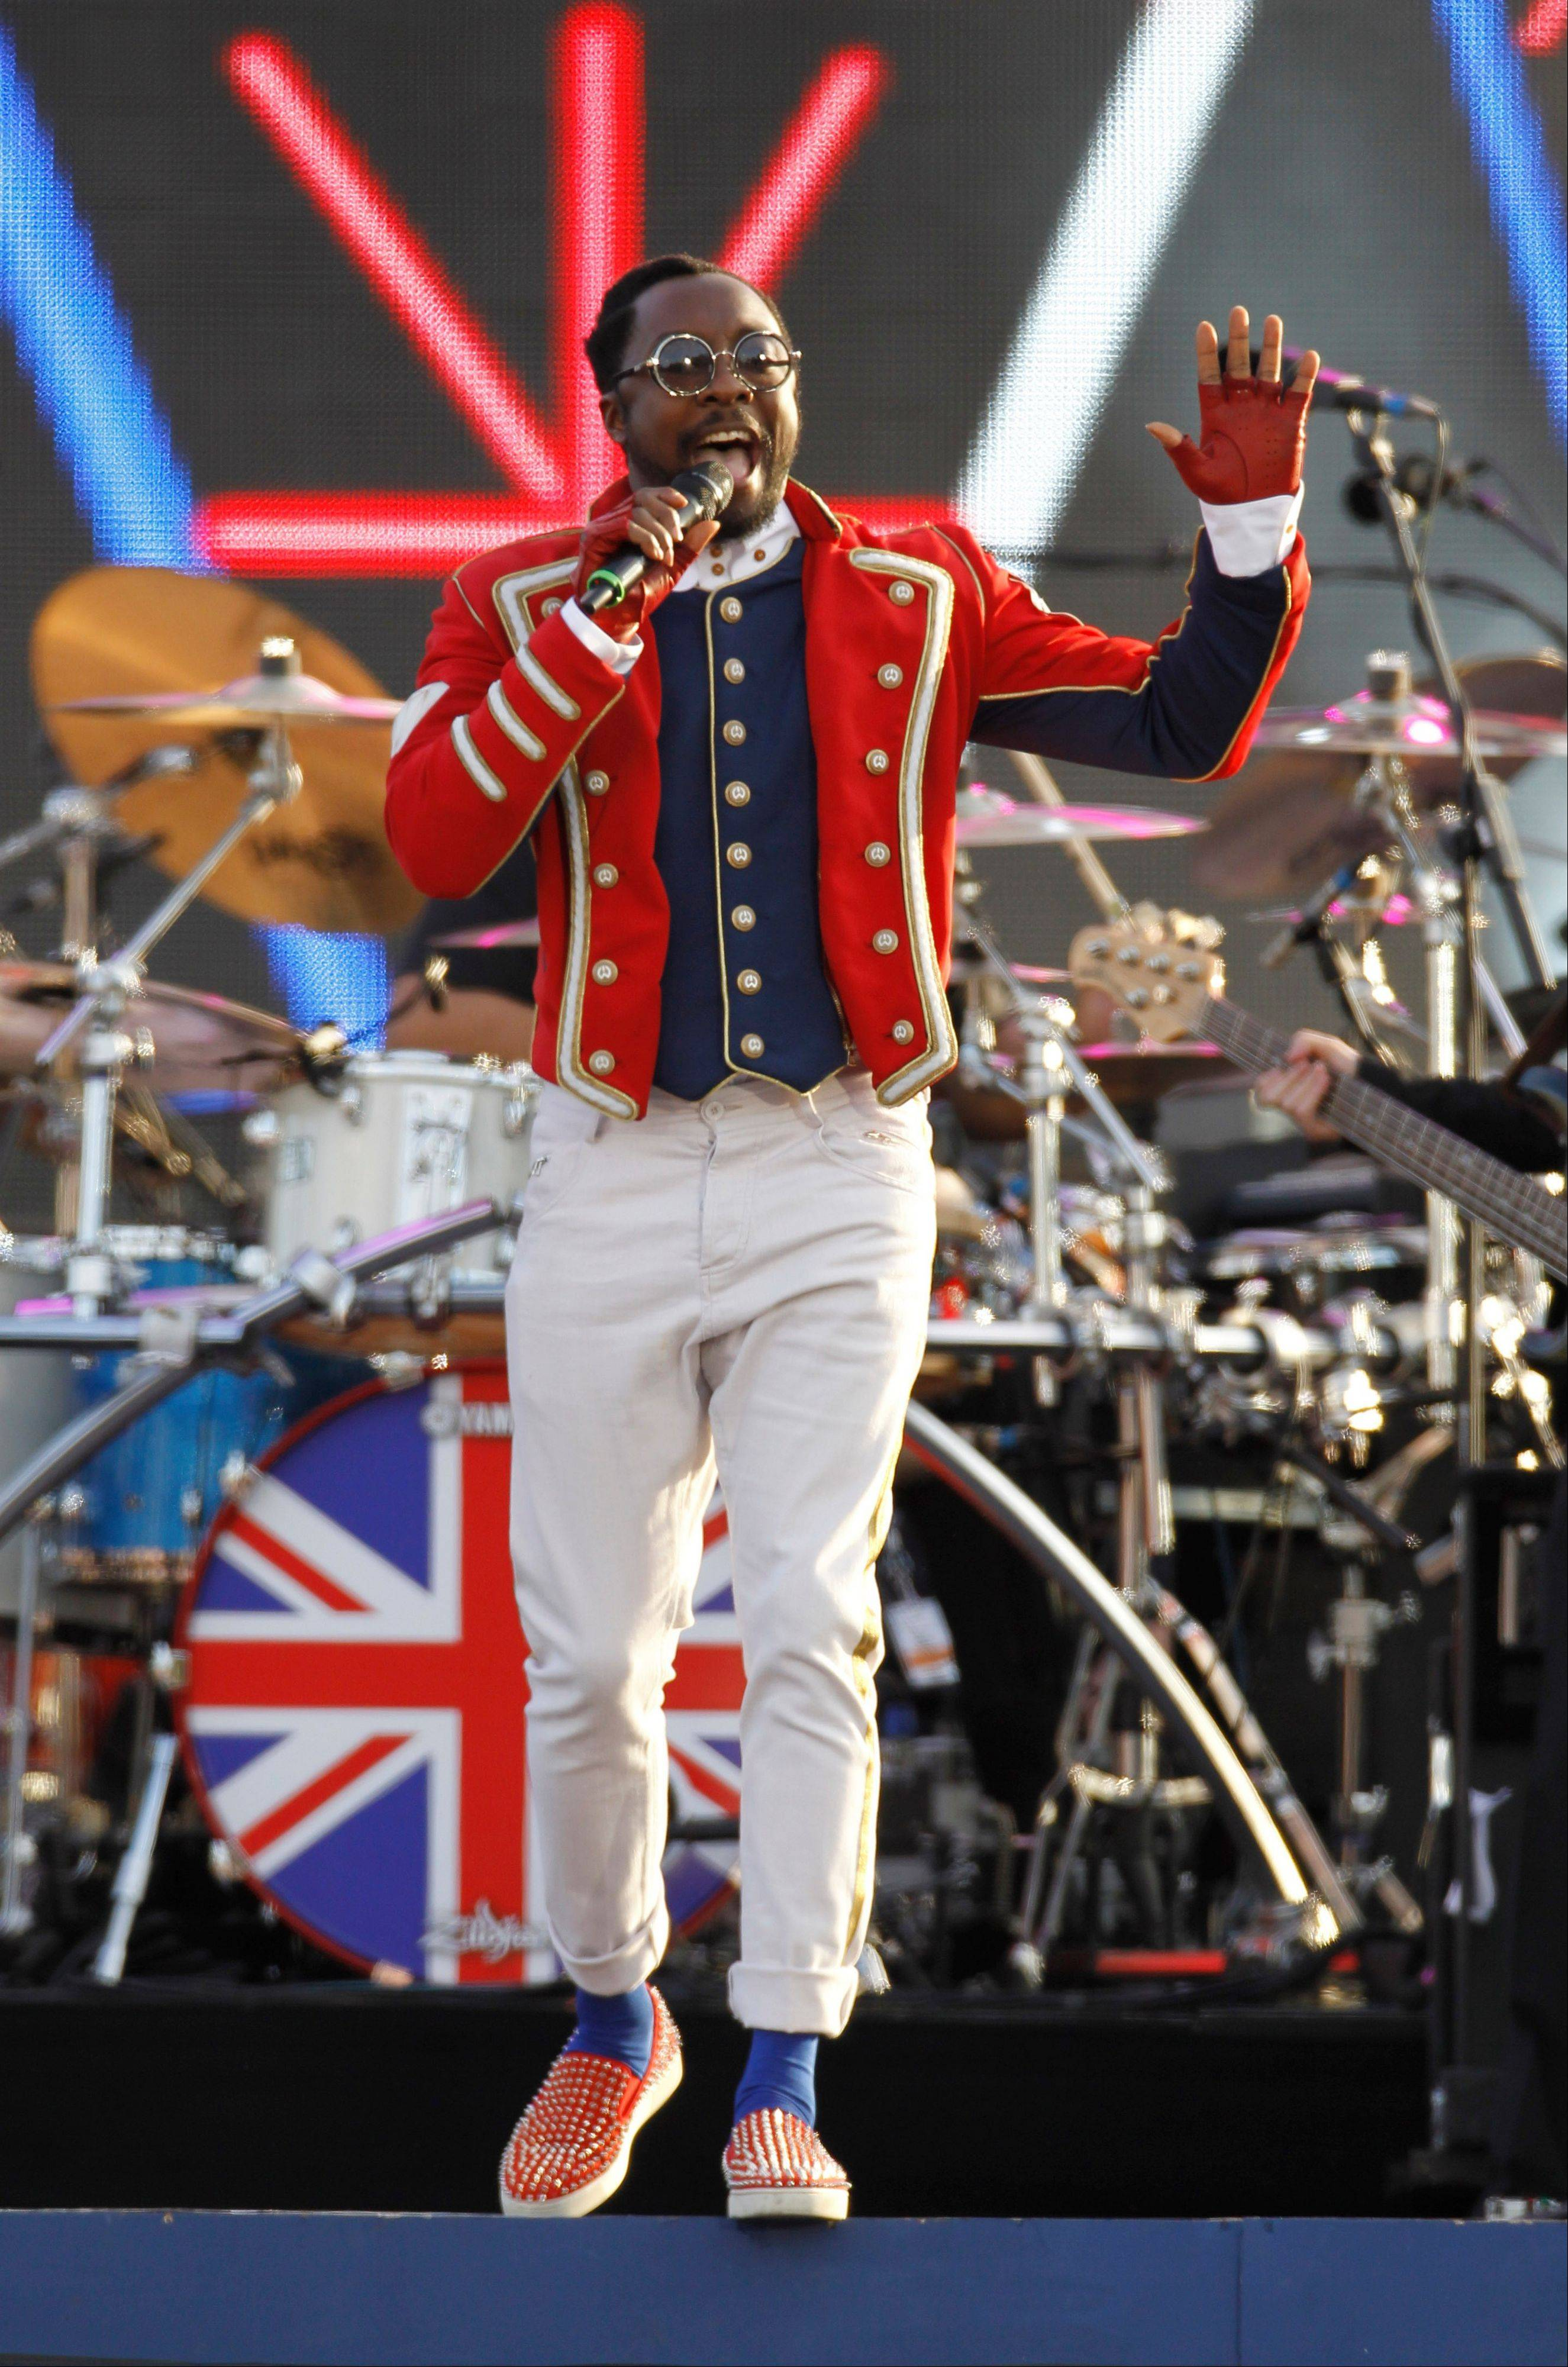 Will.I.am performs at the Queen's Jubilee Concert in front of Buckingham Palace, London, Monday, June 4, 2012. The concert is a part of four days of celebrations to mark the 60-year reign of Britain's Queen Elizabeth II.